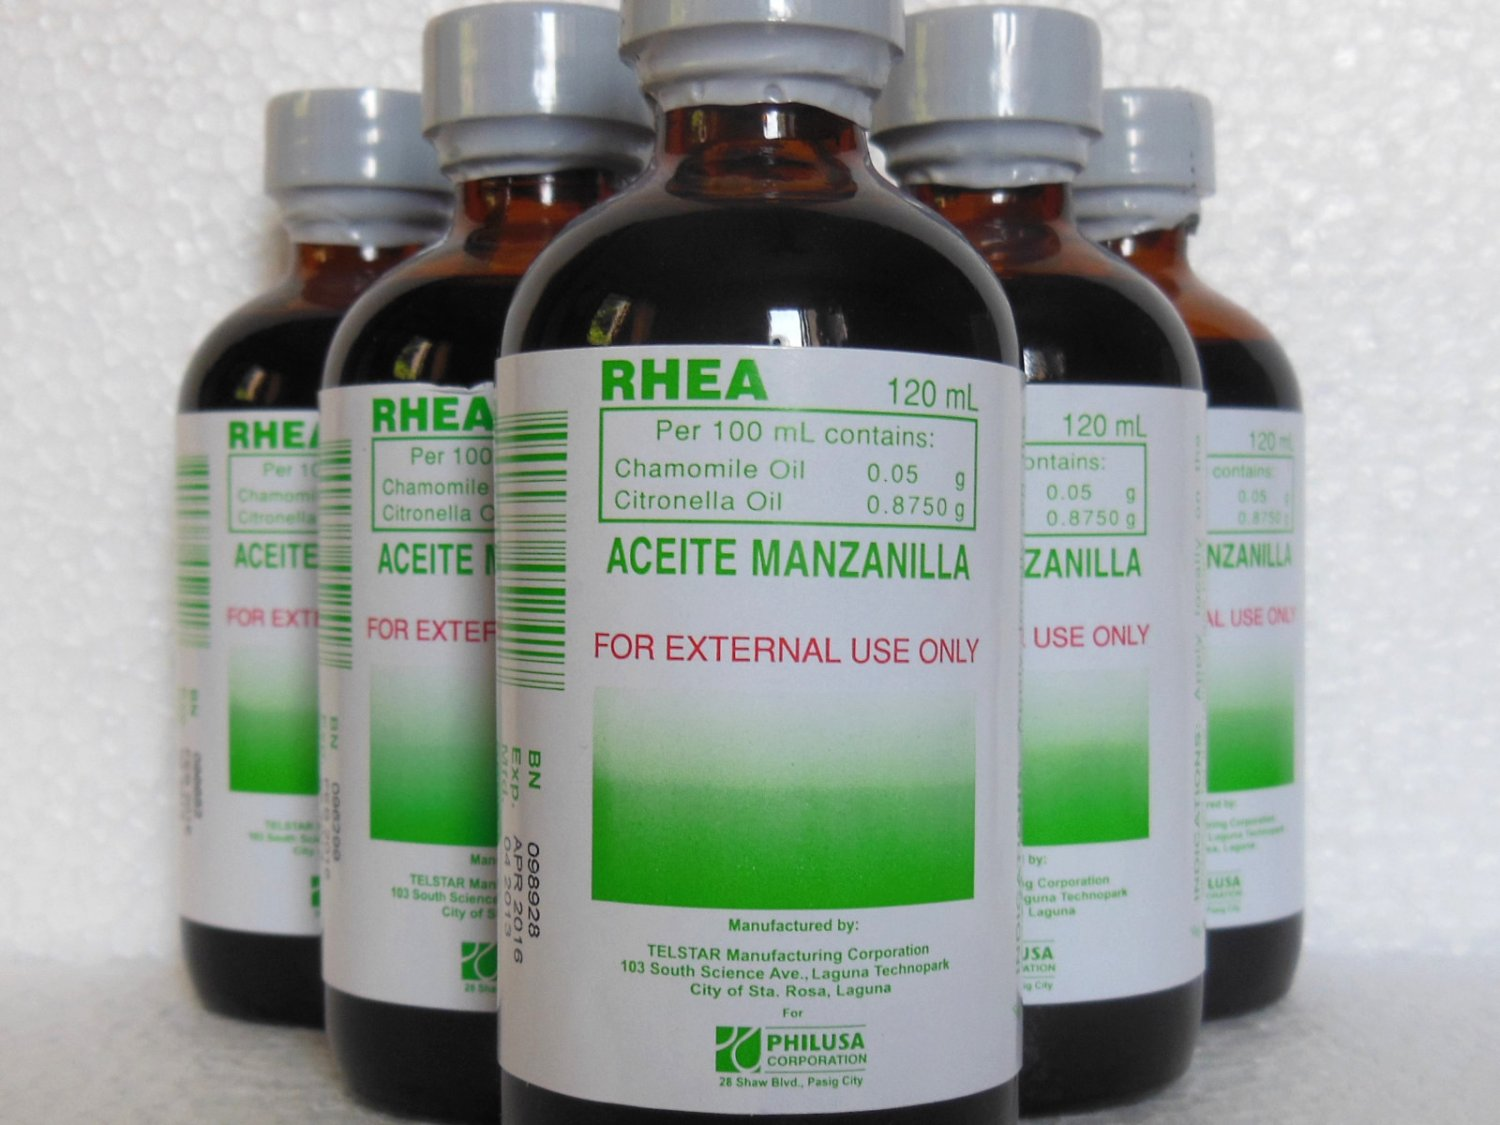 2 Large 120ml Bottles Aceite De Manzanilla Rhea For Child Gas Pains Colic Md Info